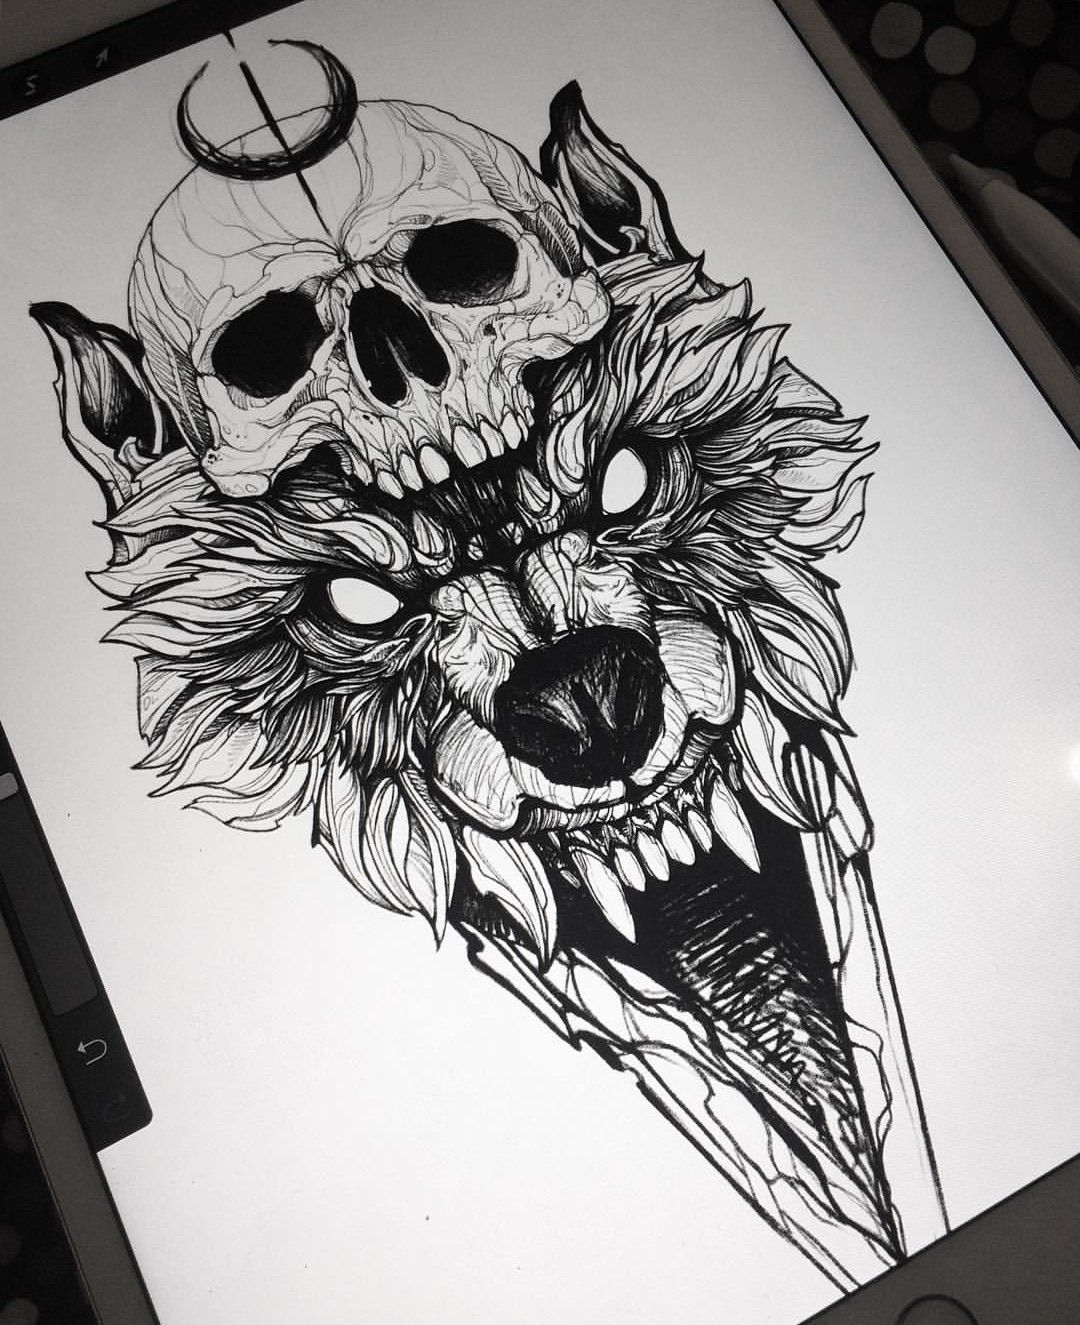 054e1611d WolfTattooIdeas | Tattoo | Wolf tattoos, Tattoo drawings, Tattoo ...